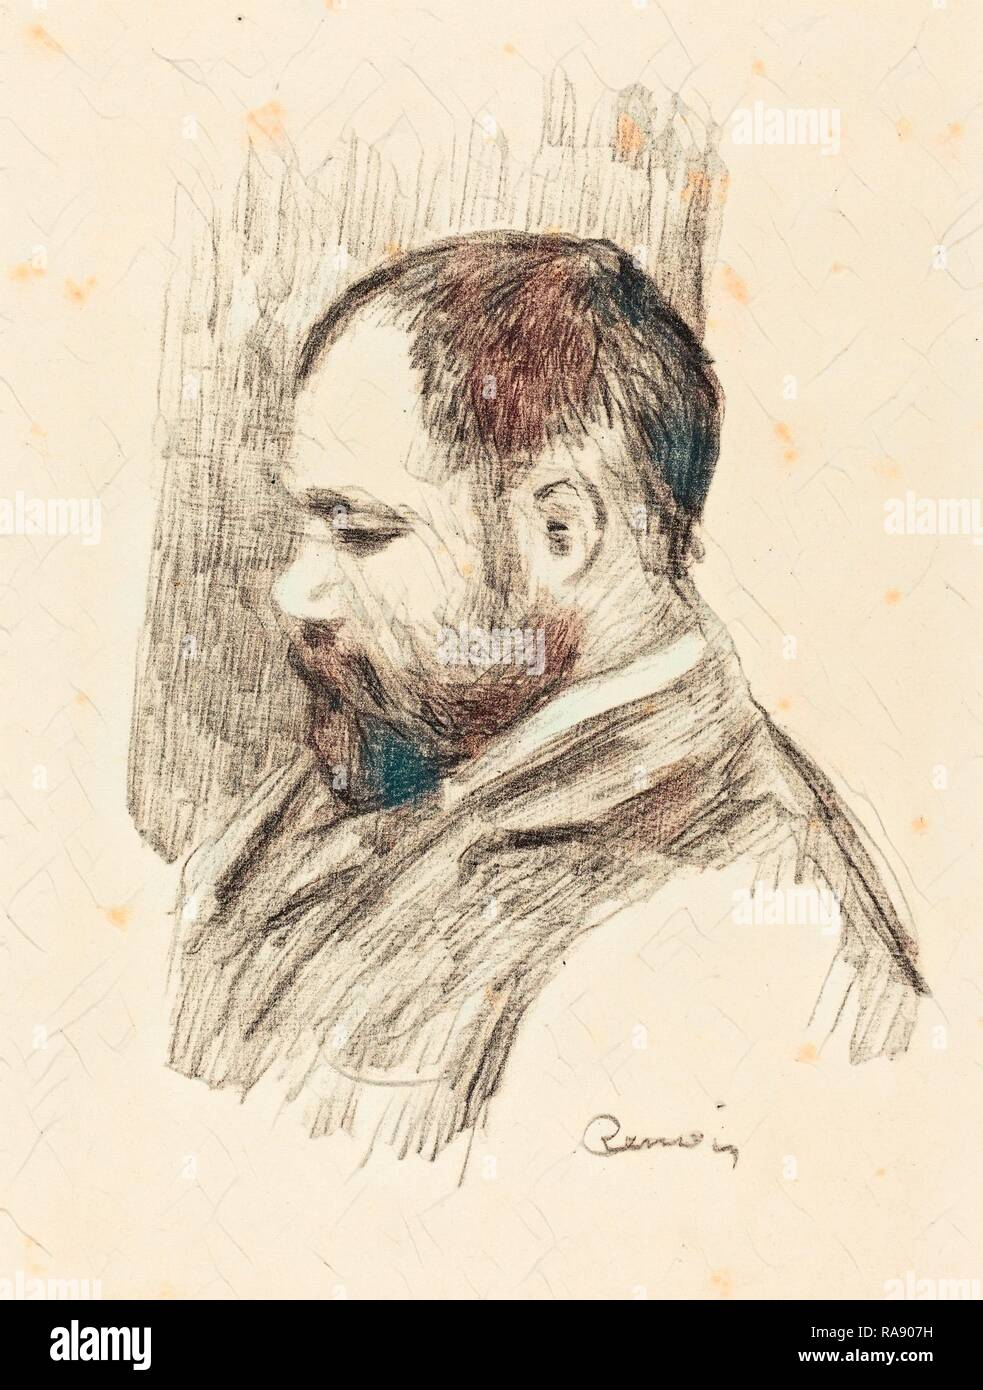 Auguste Renoir, Ambroise Vollard, French, 1841 - 1919, 1904, lithograph. Reimagined by Gibon. Classic art with a reimagined - Stock Image